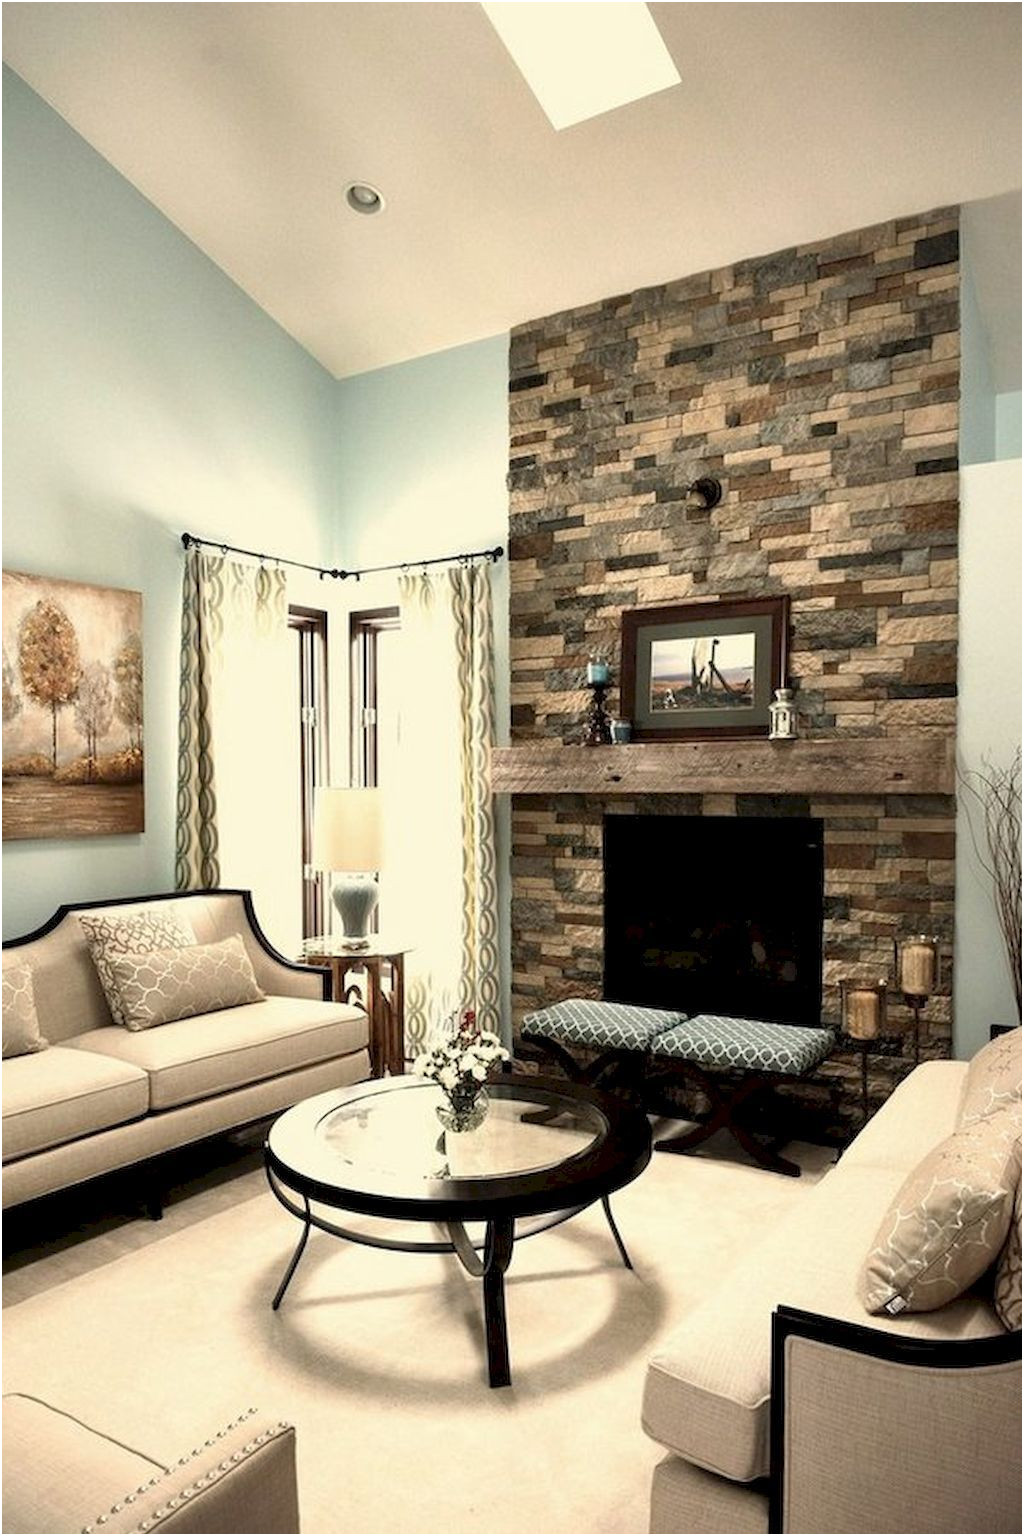 Decorative Ideas for Fireplace Inspirational 70 Gorgeous Apartment Fireplace Decorating Ideas